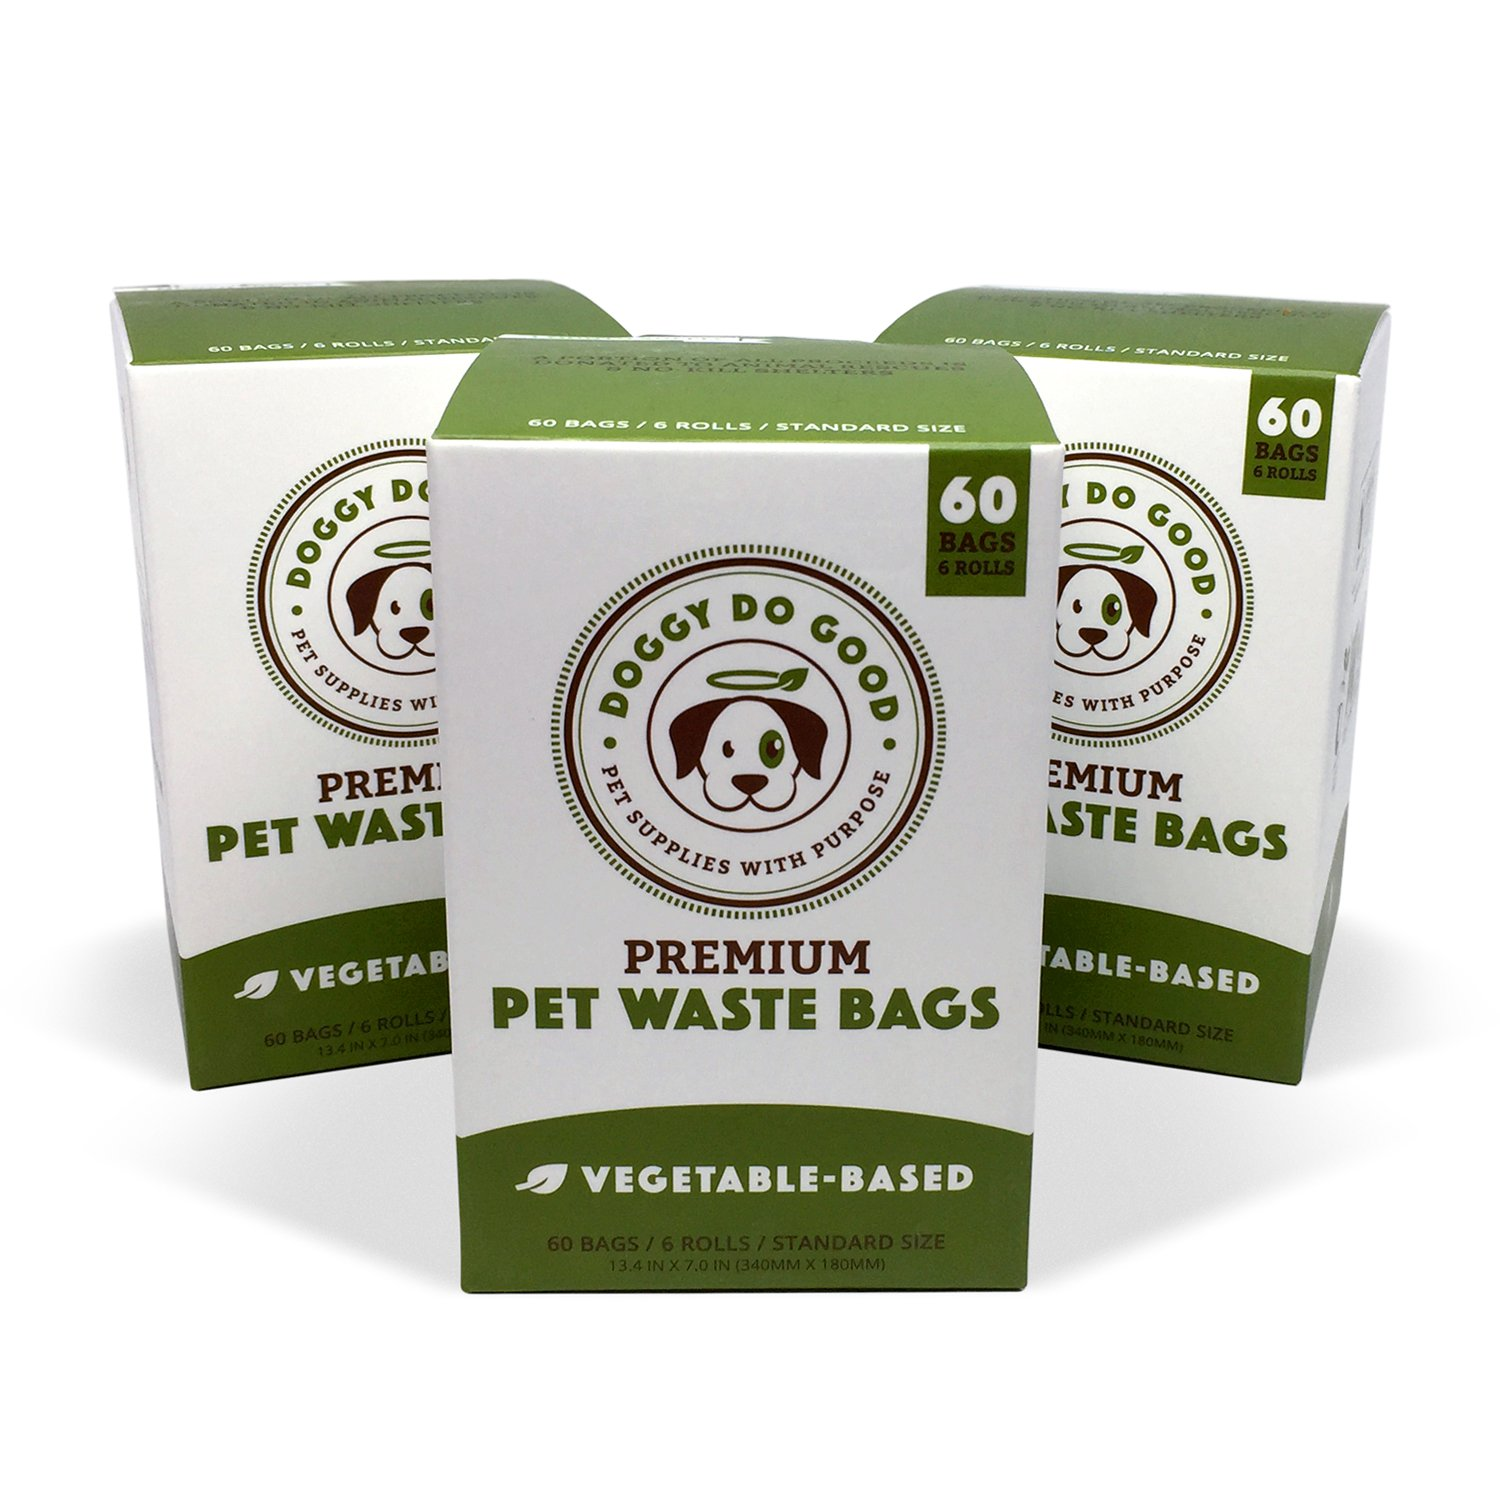 Biodegradable Poop Bags | Dog Waste Bags, Unscented, Vegetable-Based & Eco-Friendly, Premium Thickness & Leak Proof, Easy Detach & Open, Supports Rescues (3-Pack (180 ct)) by Doggy Do Good